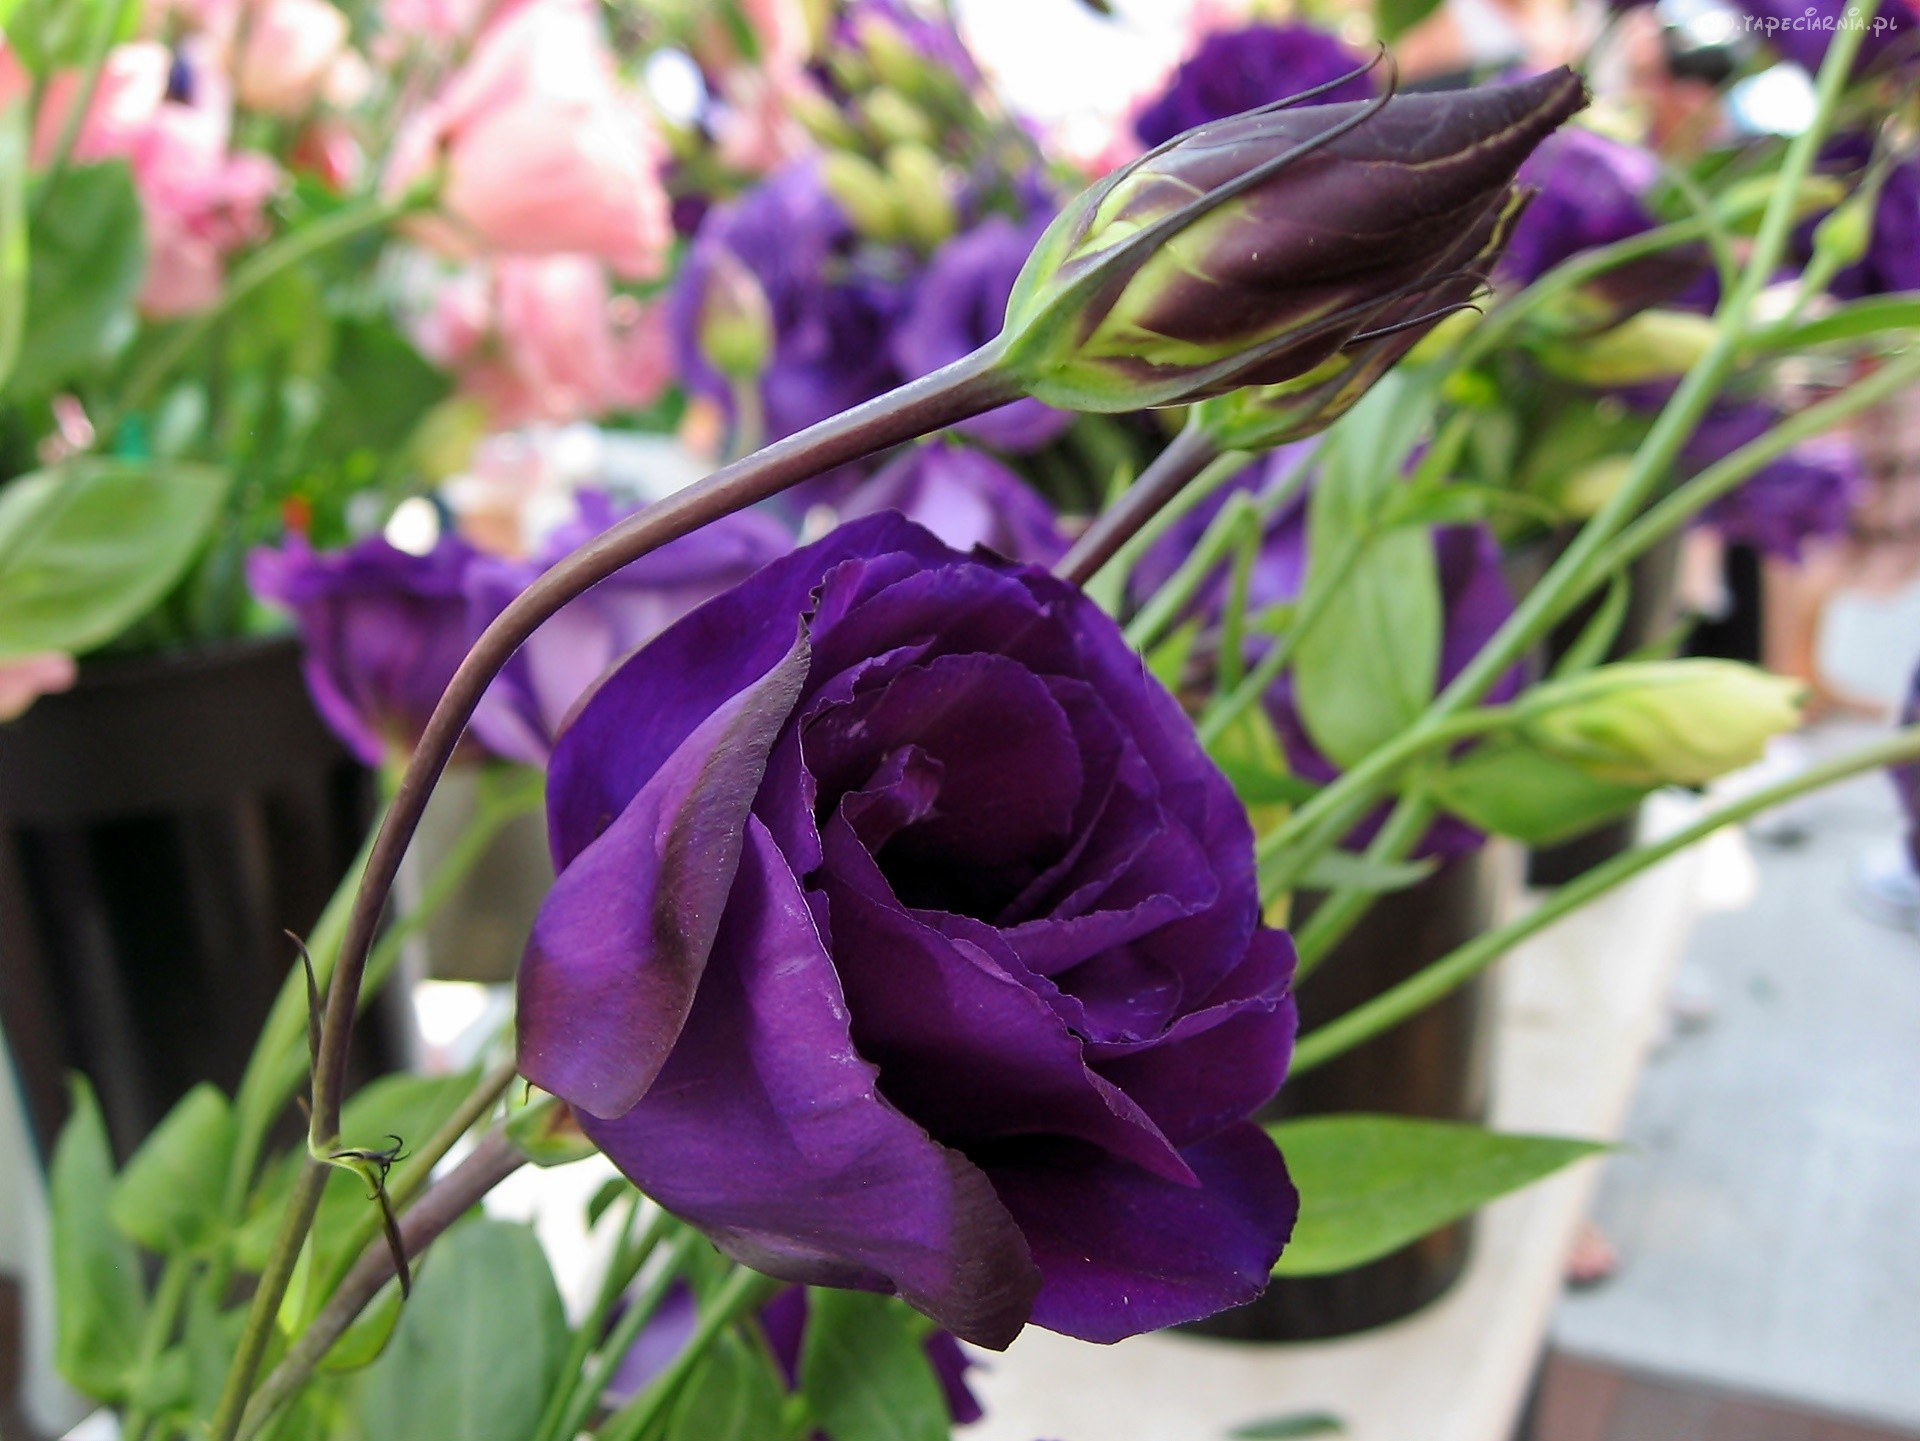 Lisianthus High Quality Wallpapers